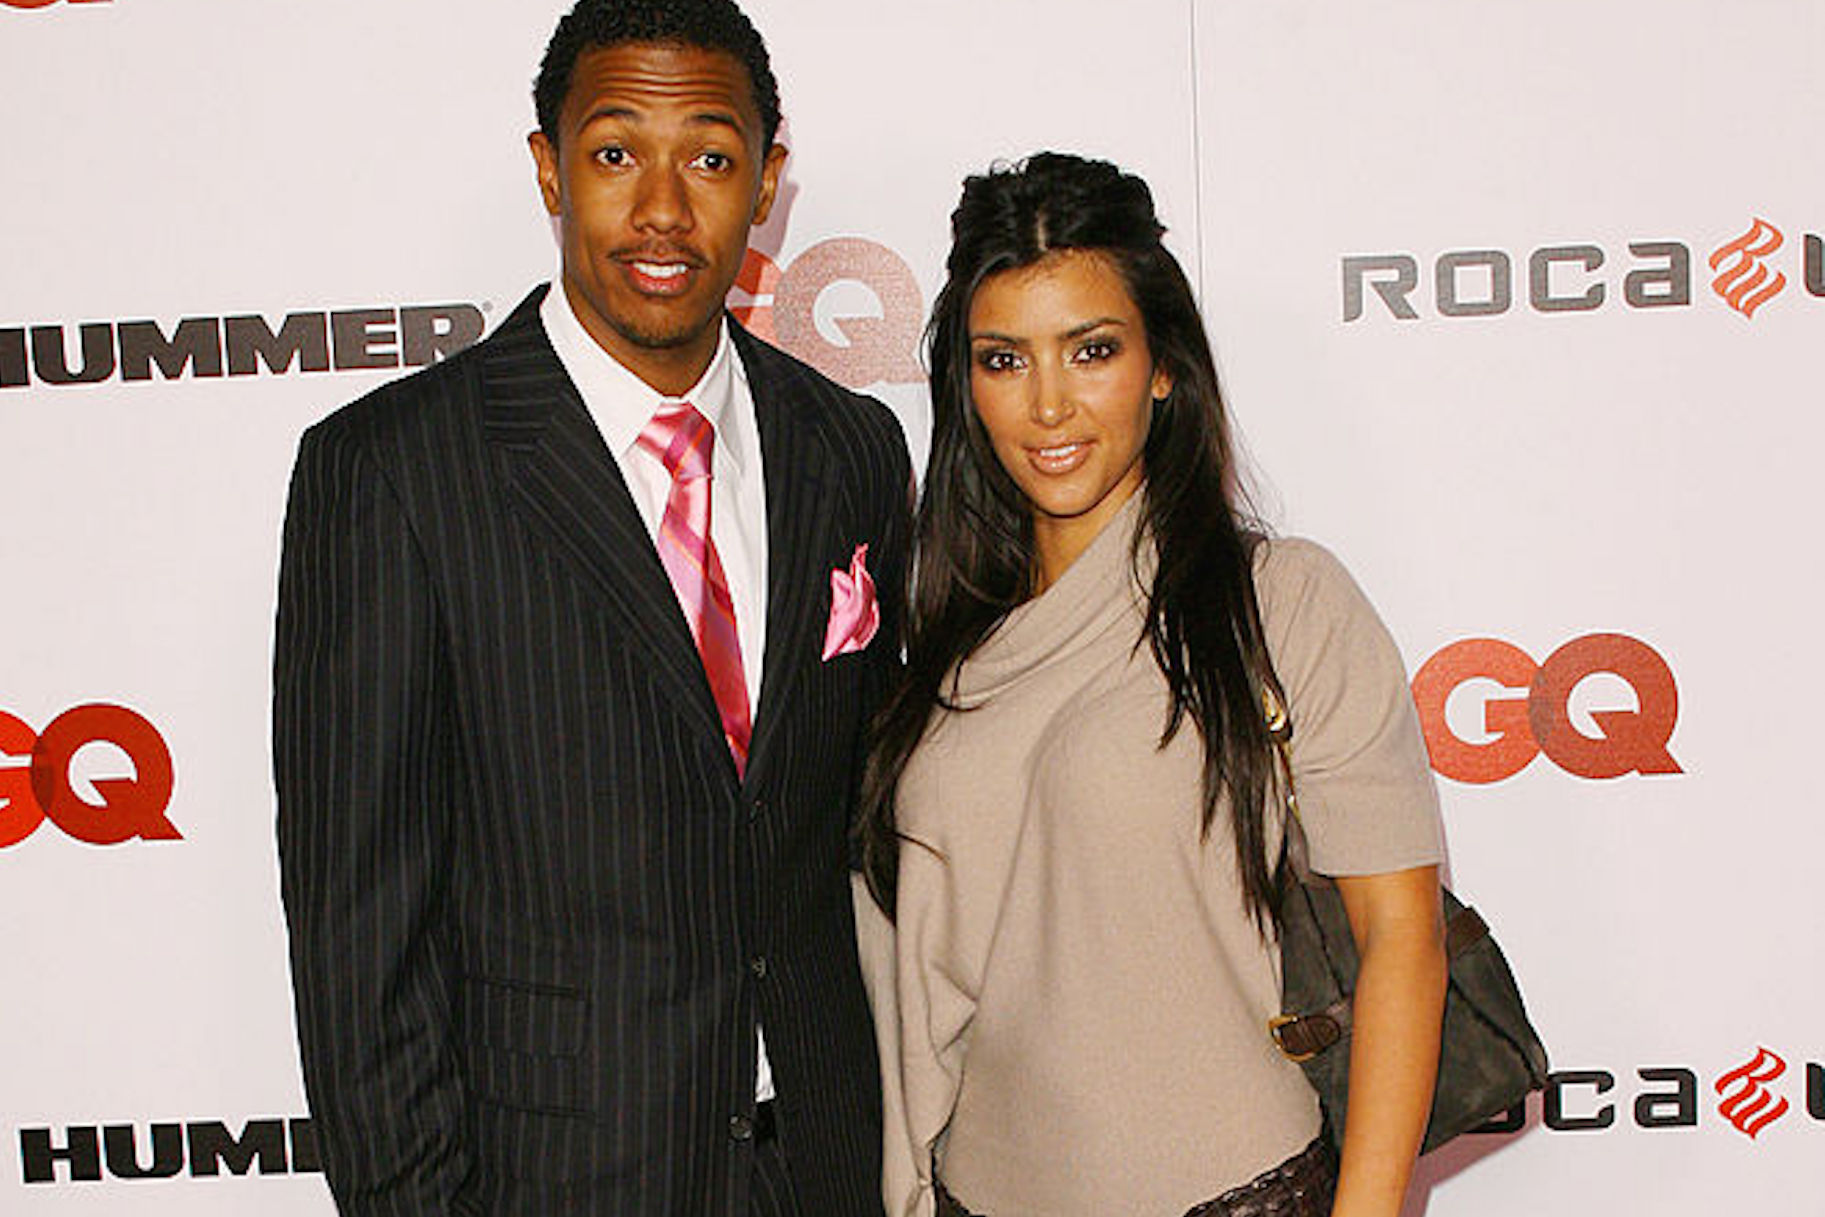 Who is nick cannon dating now 2018